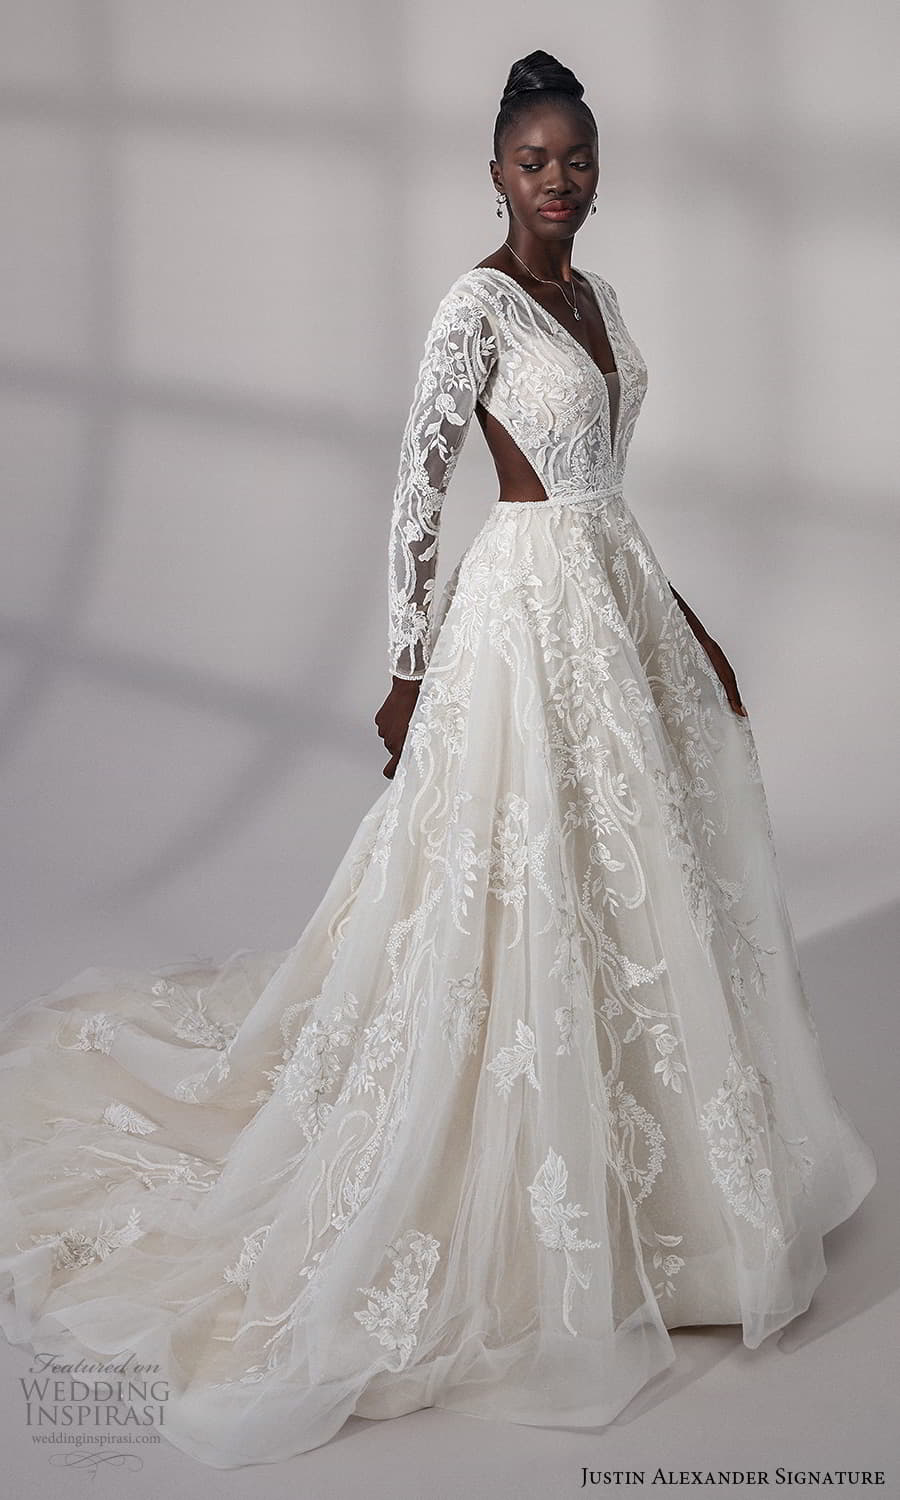 justin alexander signature fall 2021 bridal long sleeves v neckline fully embellished lace a line ball gown wedding dress cutout back chapel train (1) mv